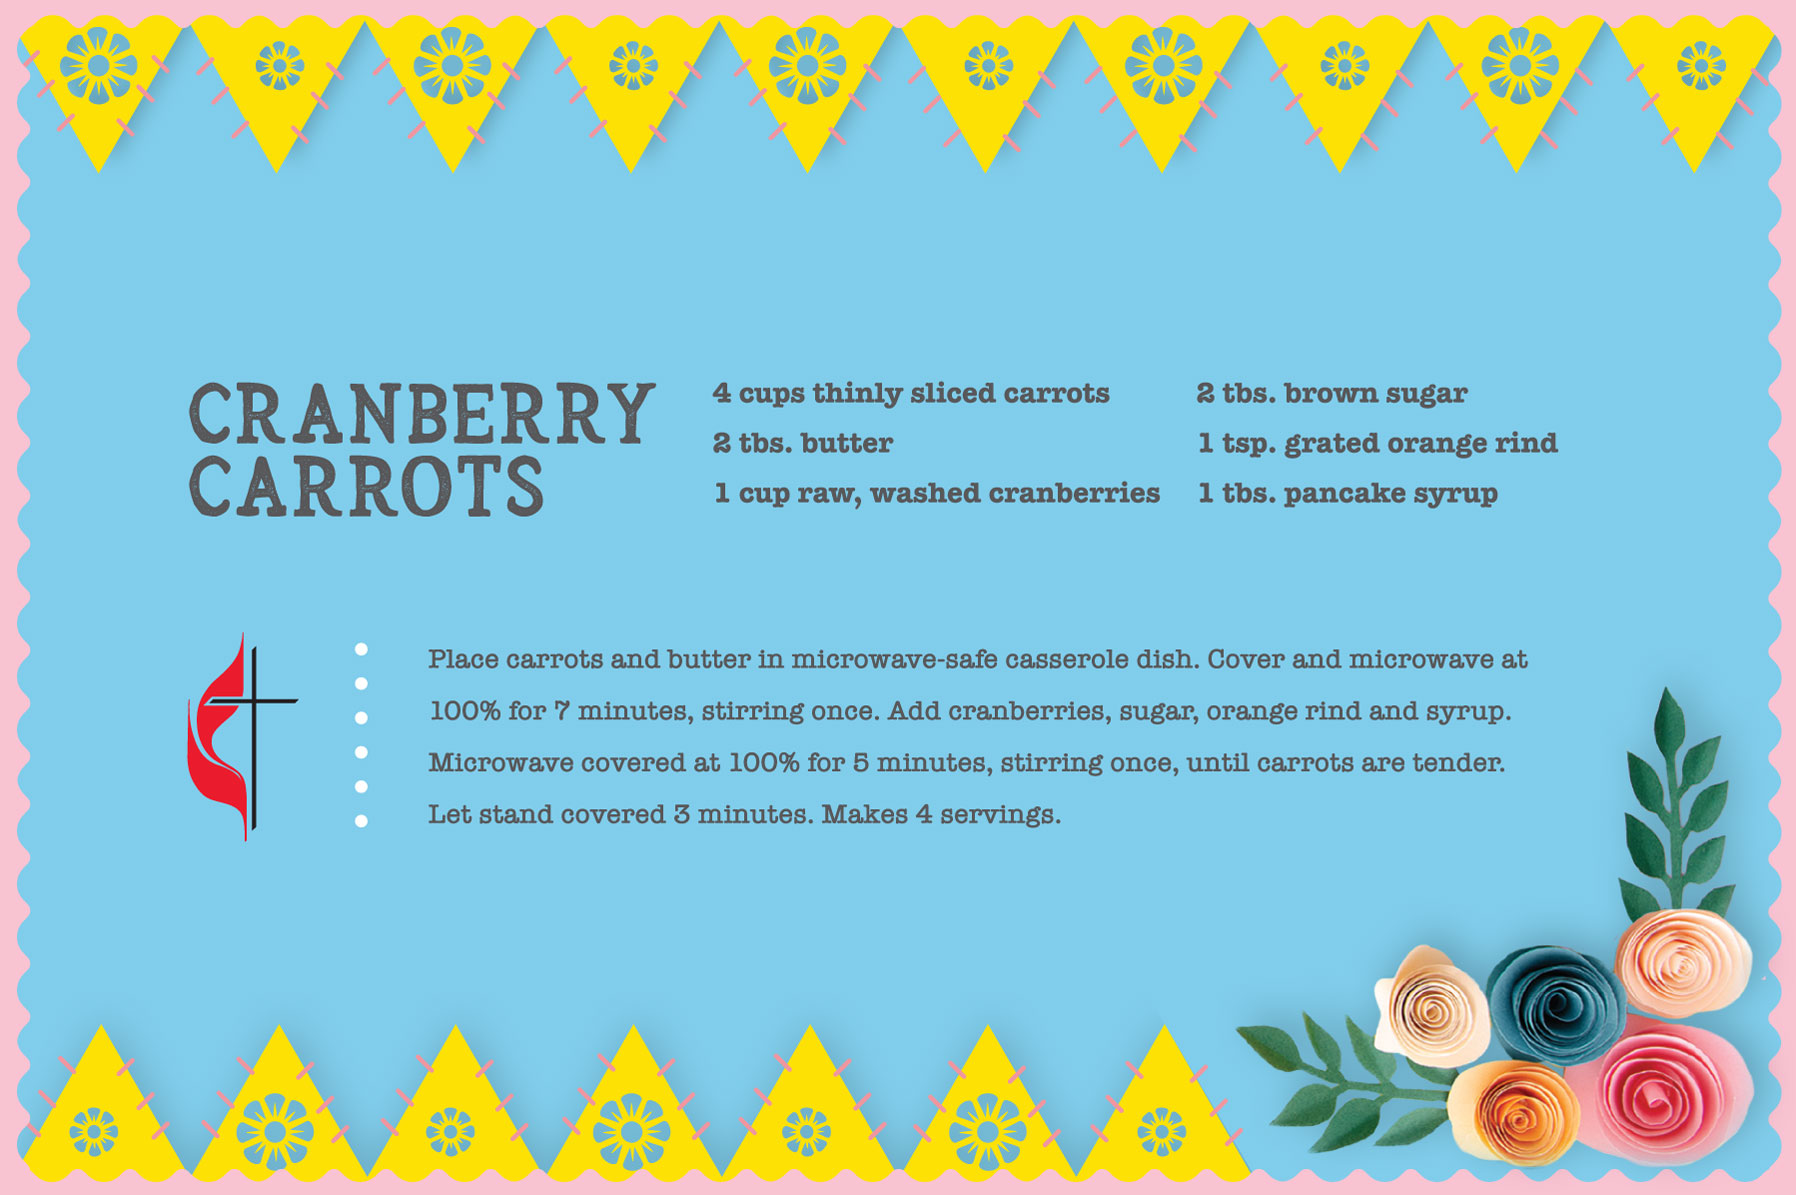 Cranberry and carrots recipe for Easter. Design by Sara Schork for United Methodist Communications